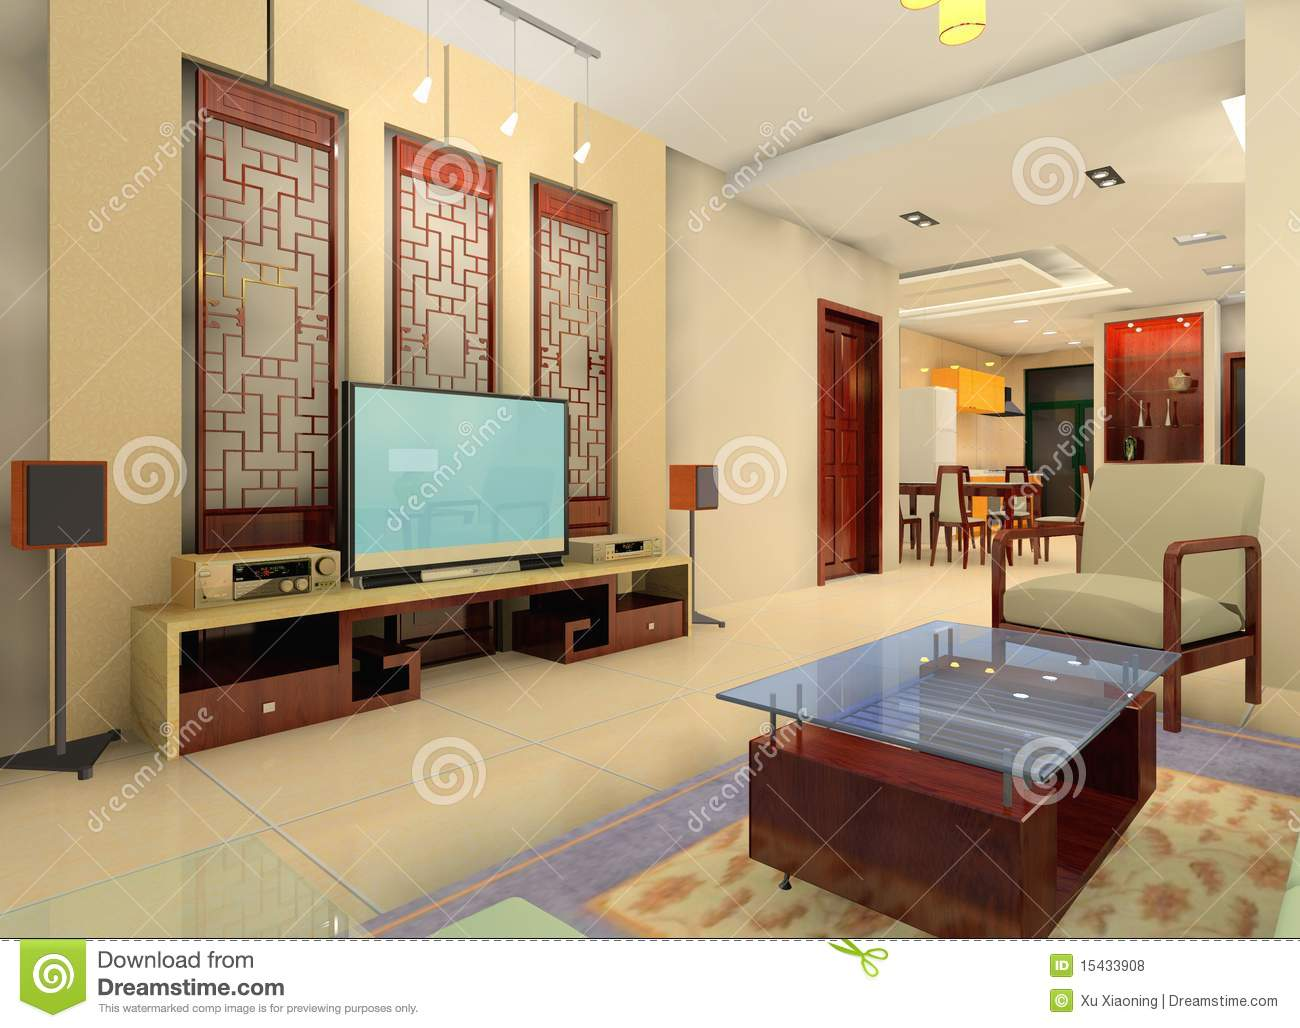 China style living room